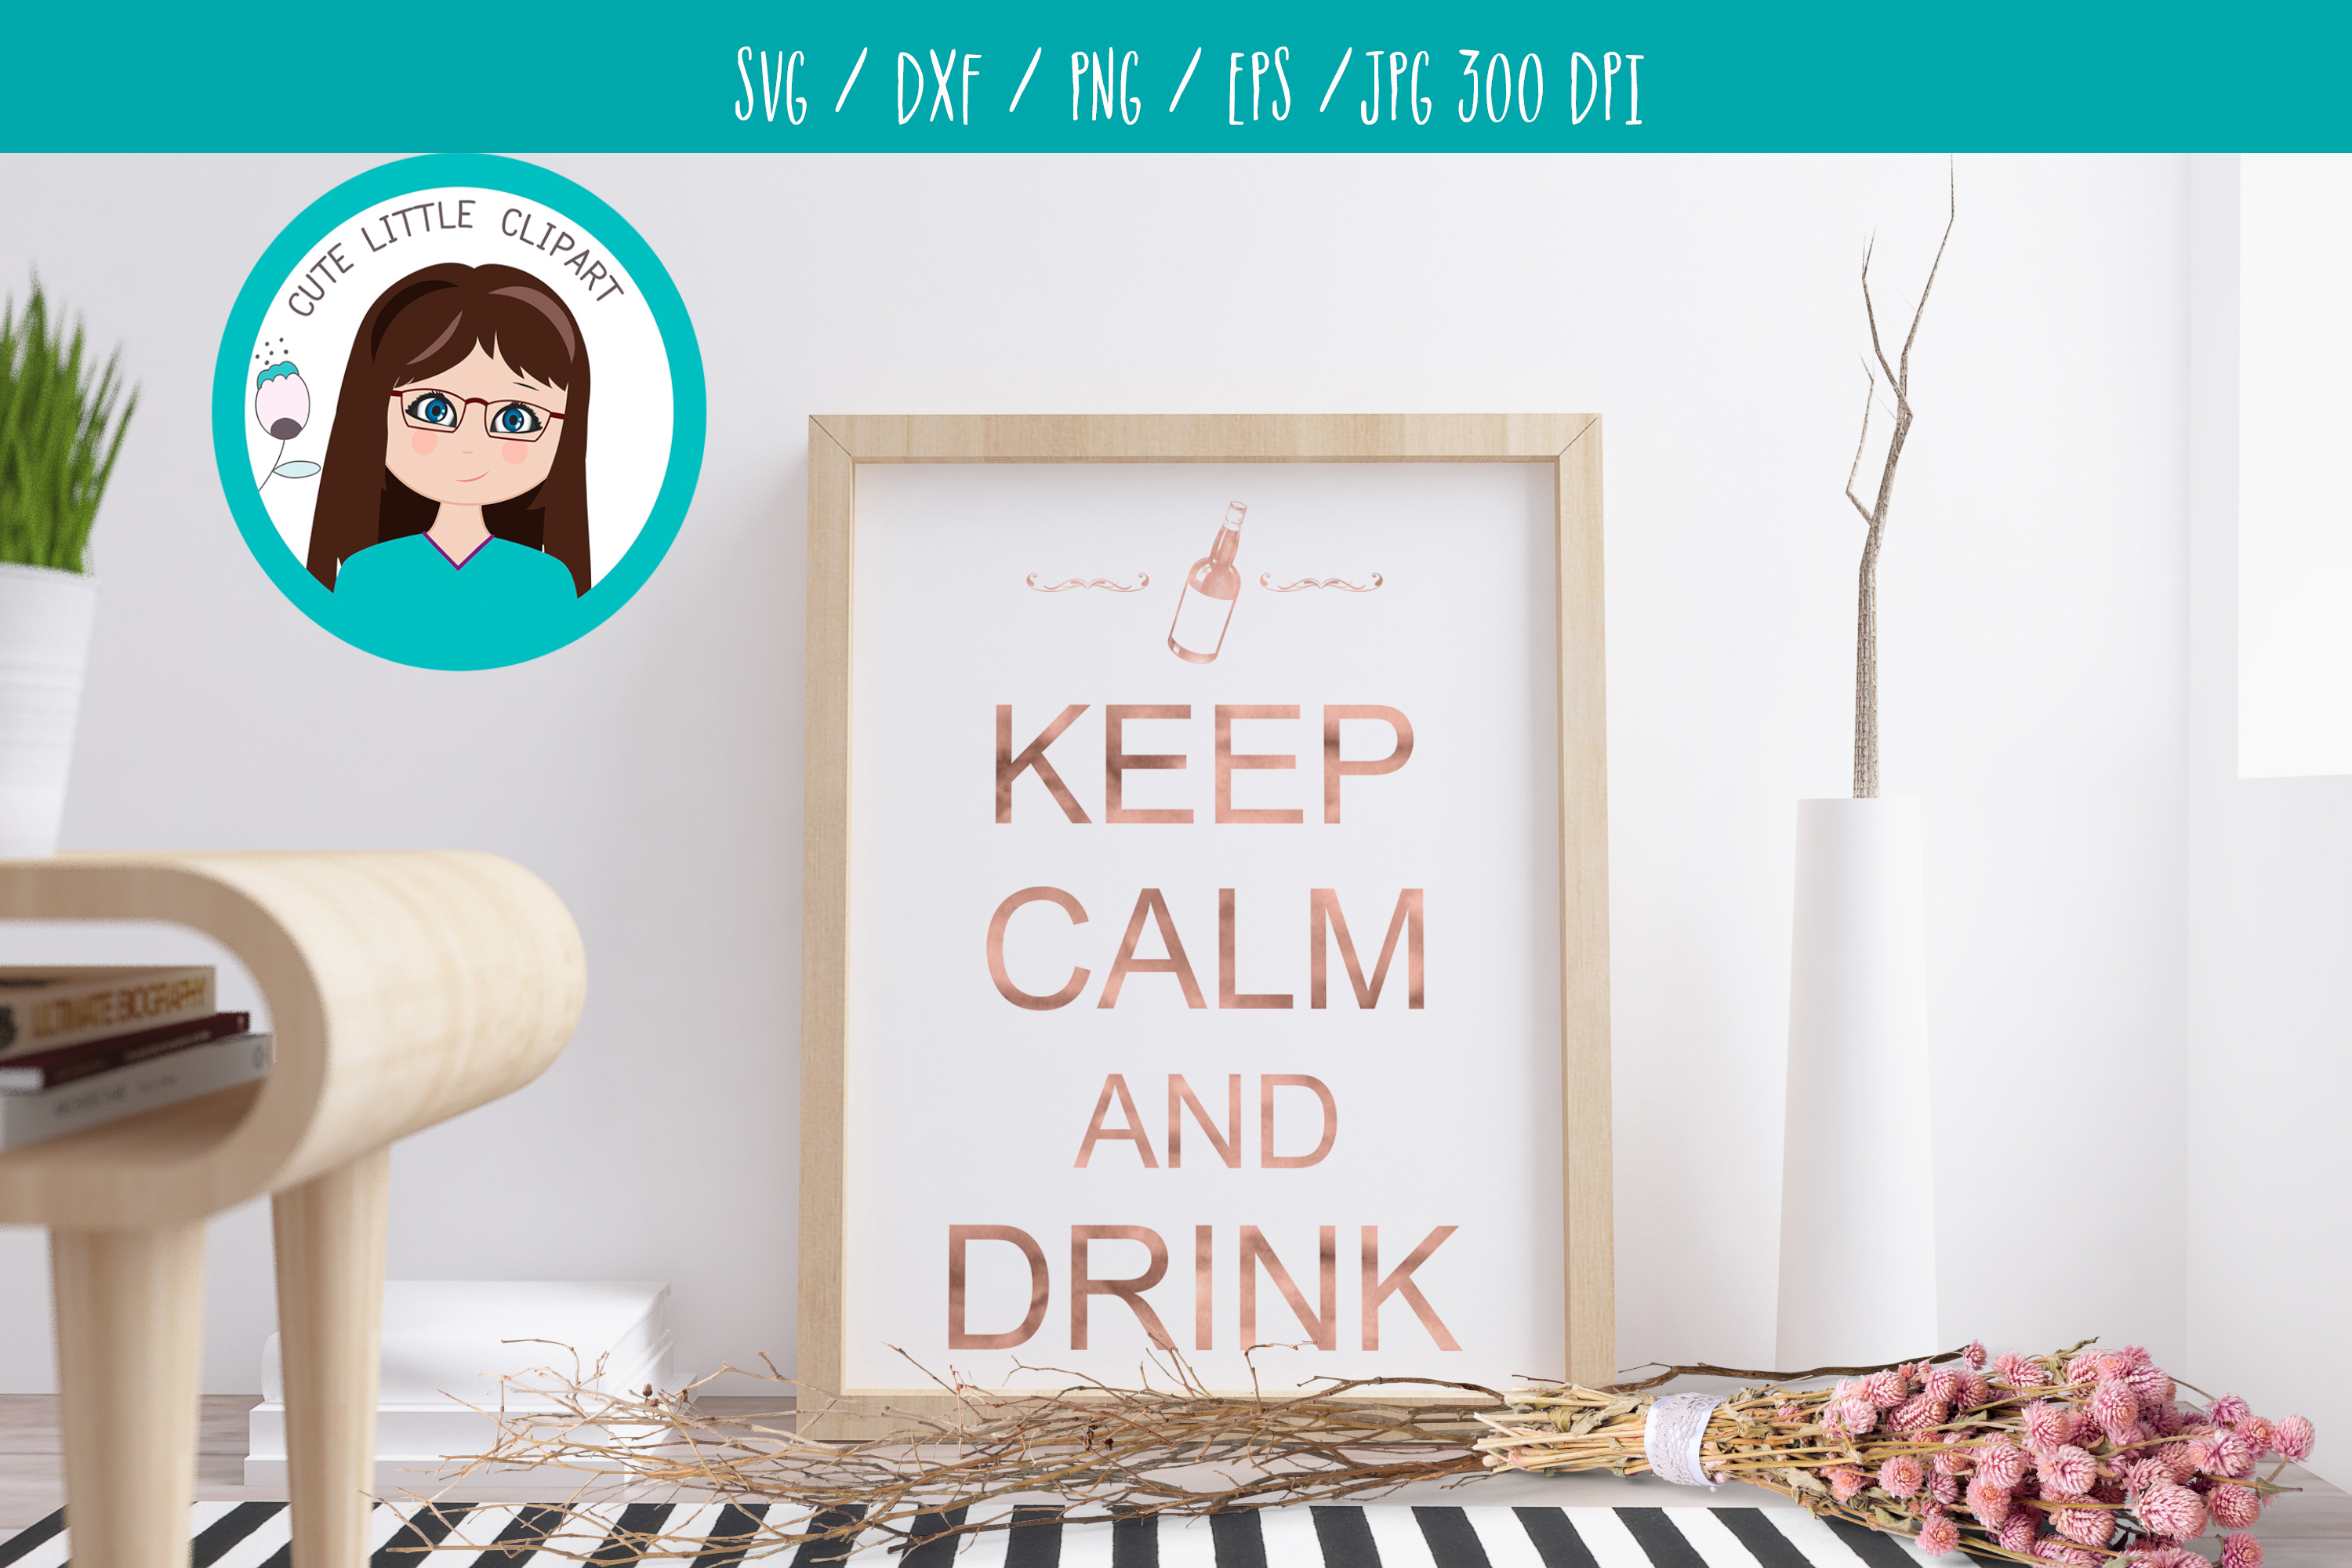 Keep Calm and drink svg example image 4